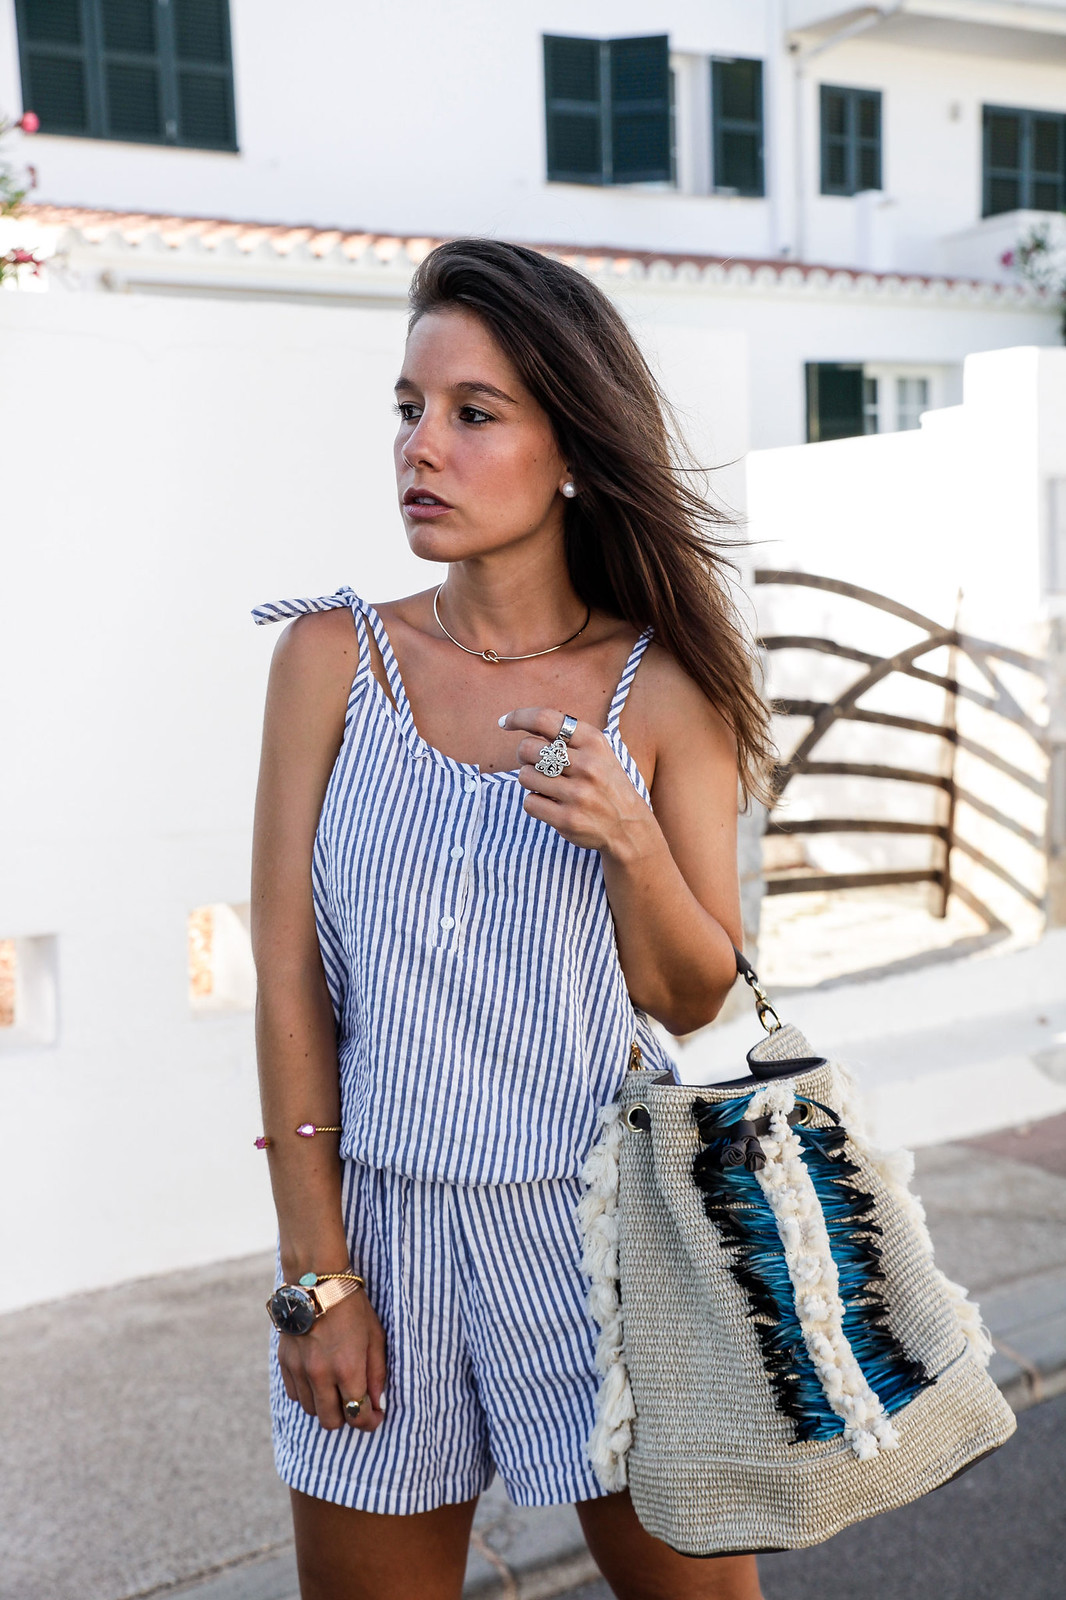 05_Mono_rayas_marineras_casual_outfit_theguestgirl_bolso_boho_via_email_pieces_style_the_guest_girl_influencer_menorca_minorca_barcelona_spain_fashion_blogger